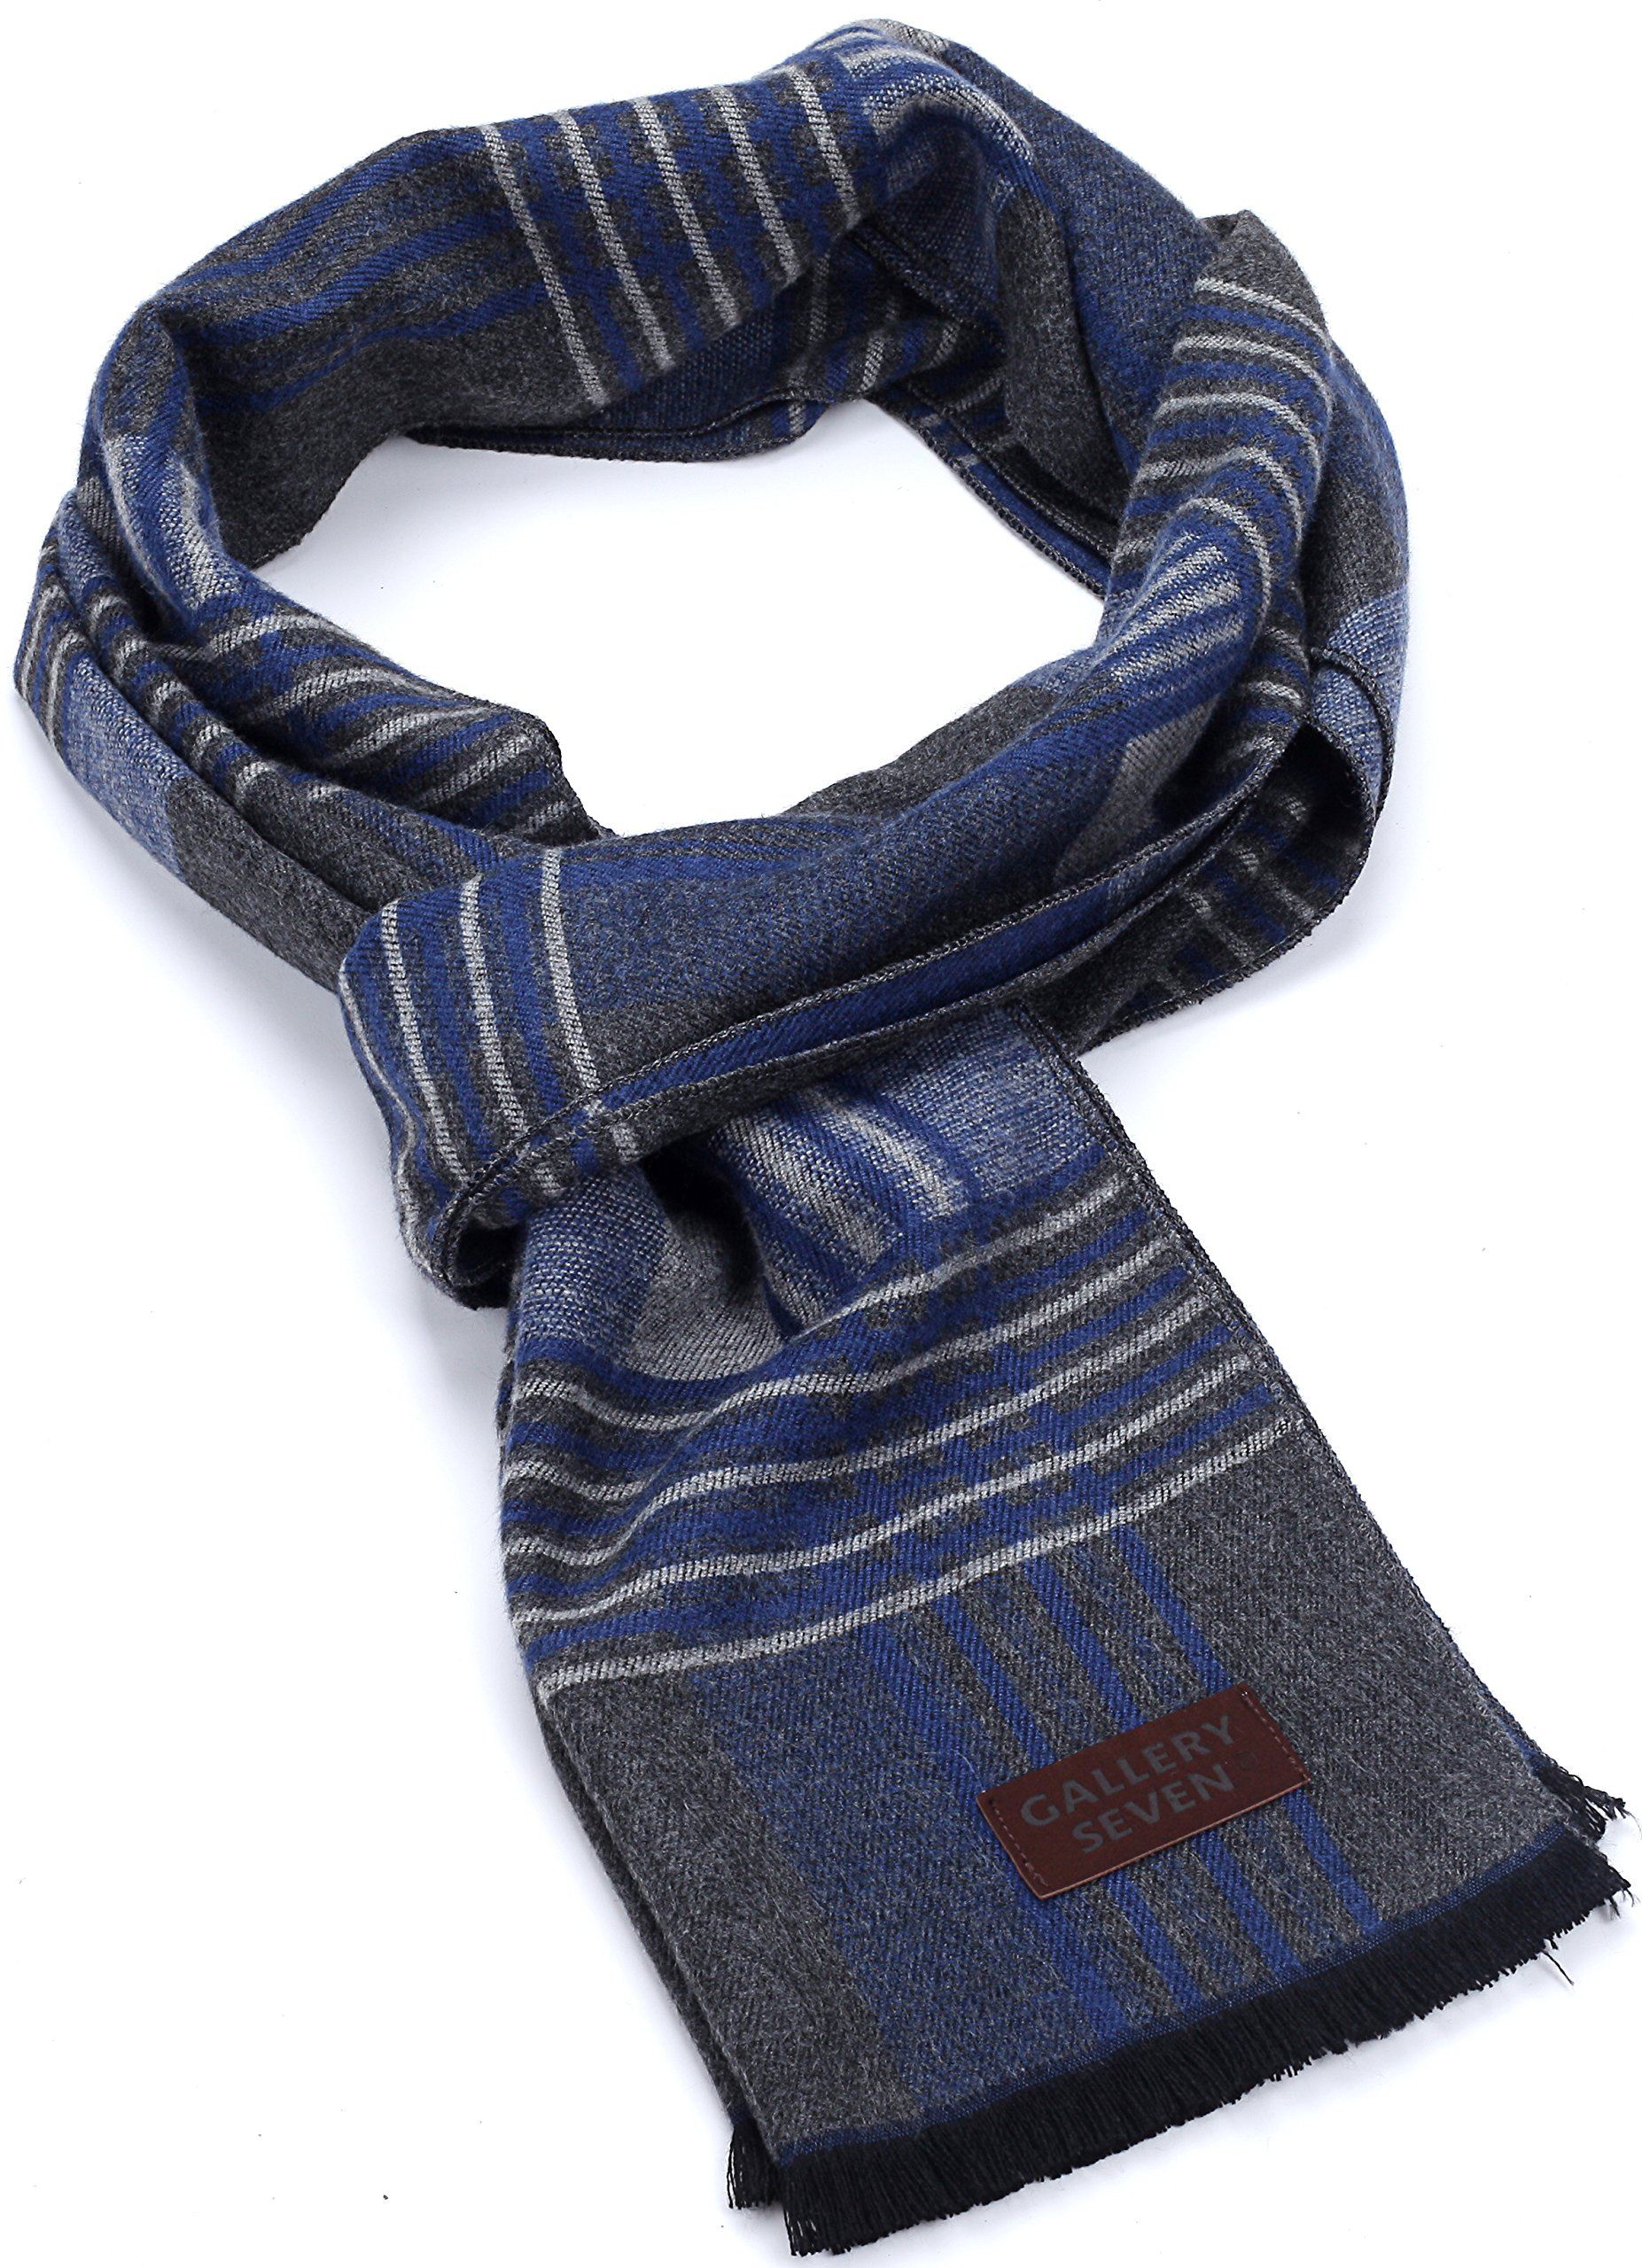 Gallery Seven Winter Scarfs for Women Fashion Scarves Elegant Gift Wrapped